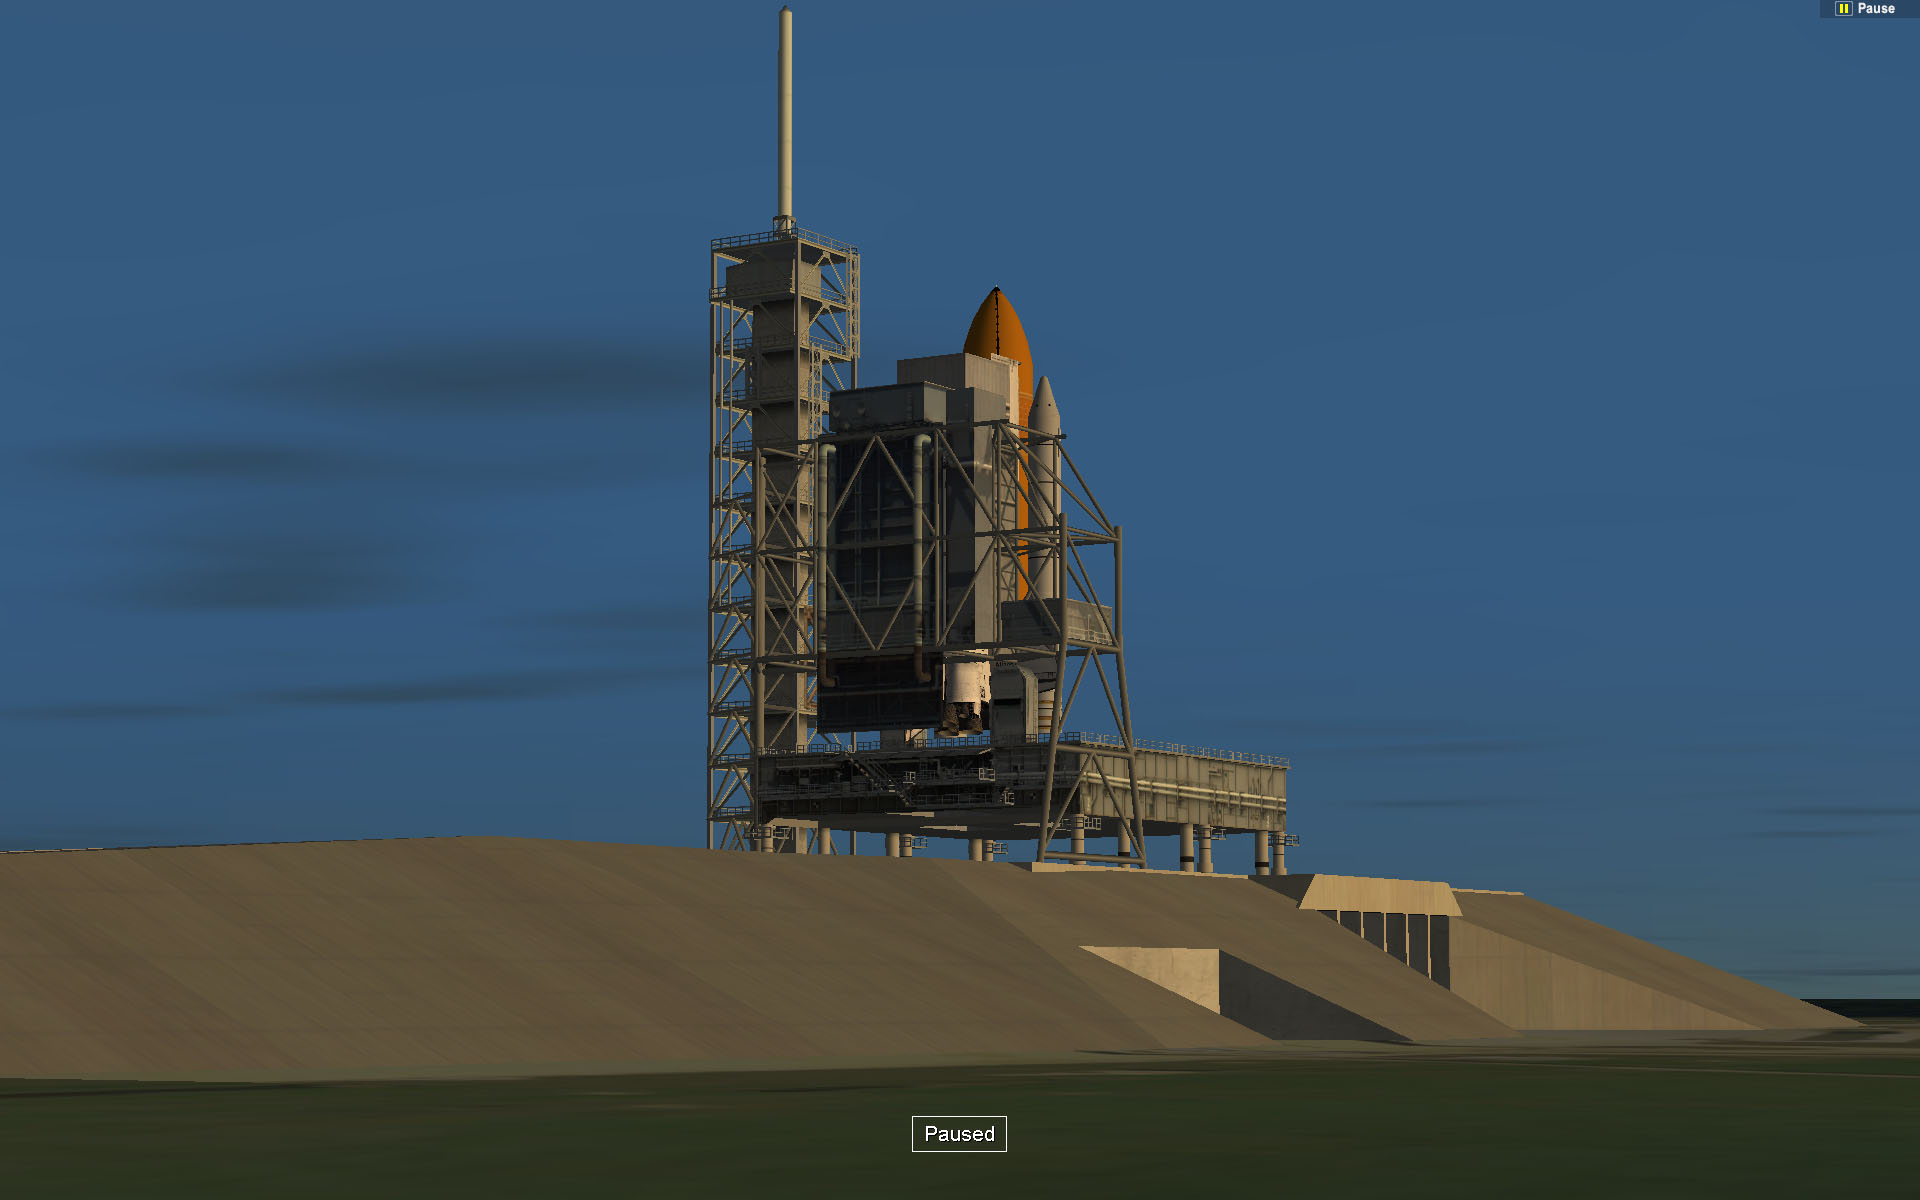 Orbiter screenshot